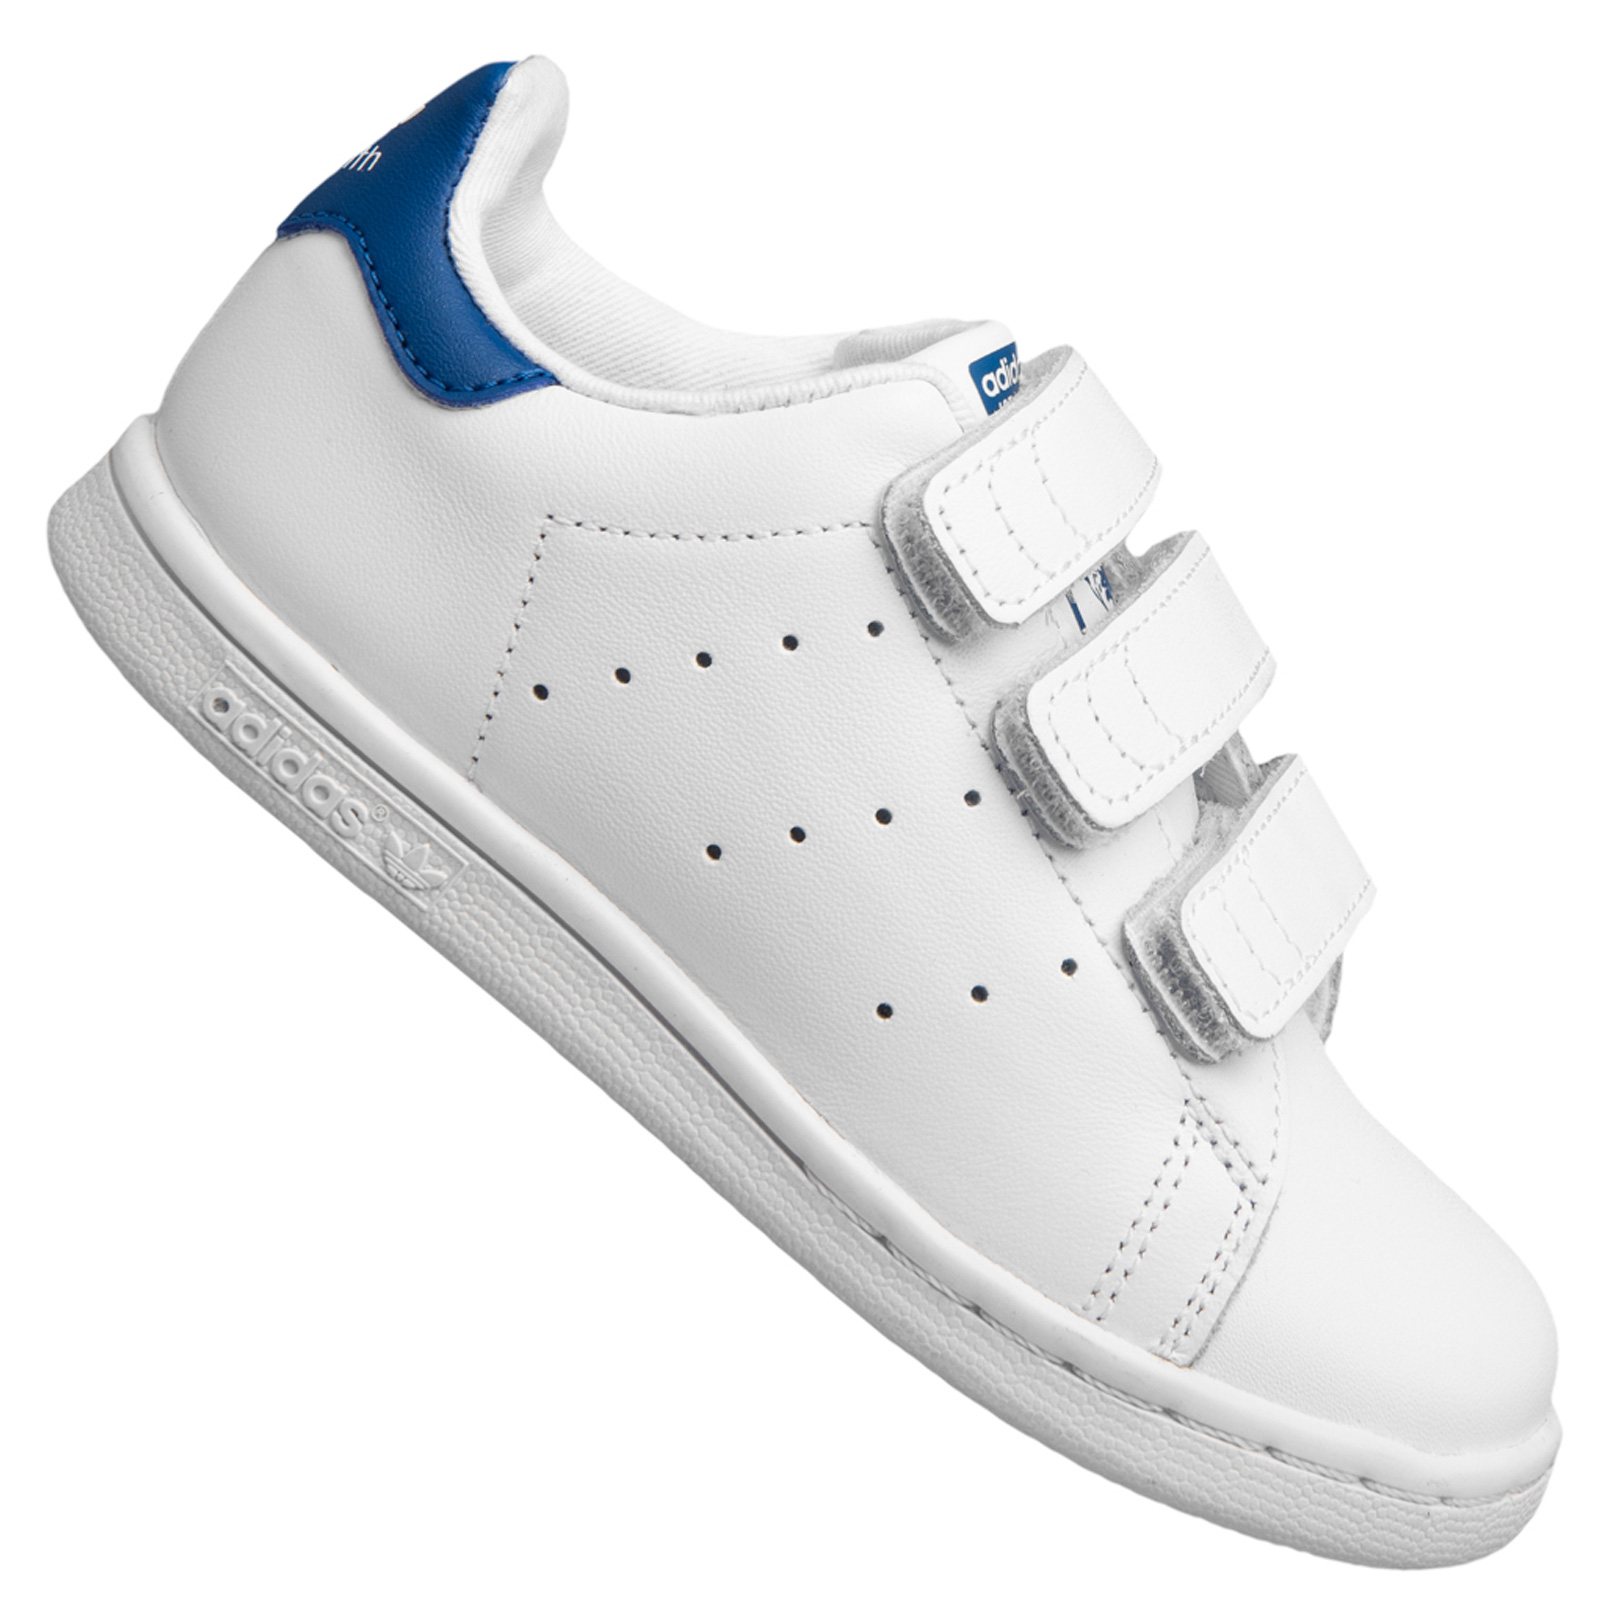 Details about Adidas Originals Stan Smith Trainers Children Trainers Boys' Shoes White Blue